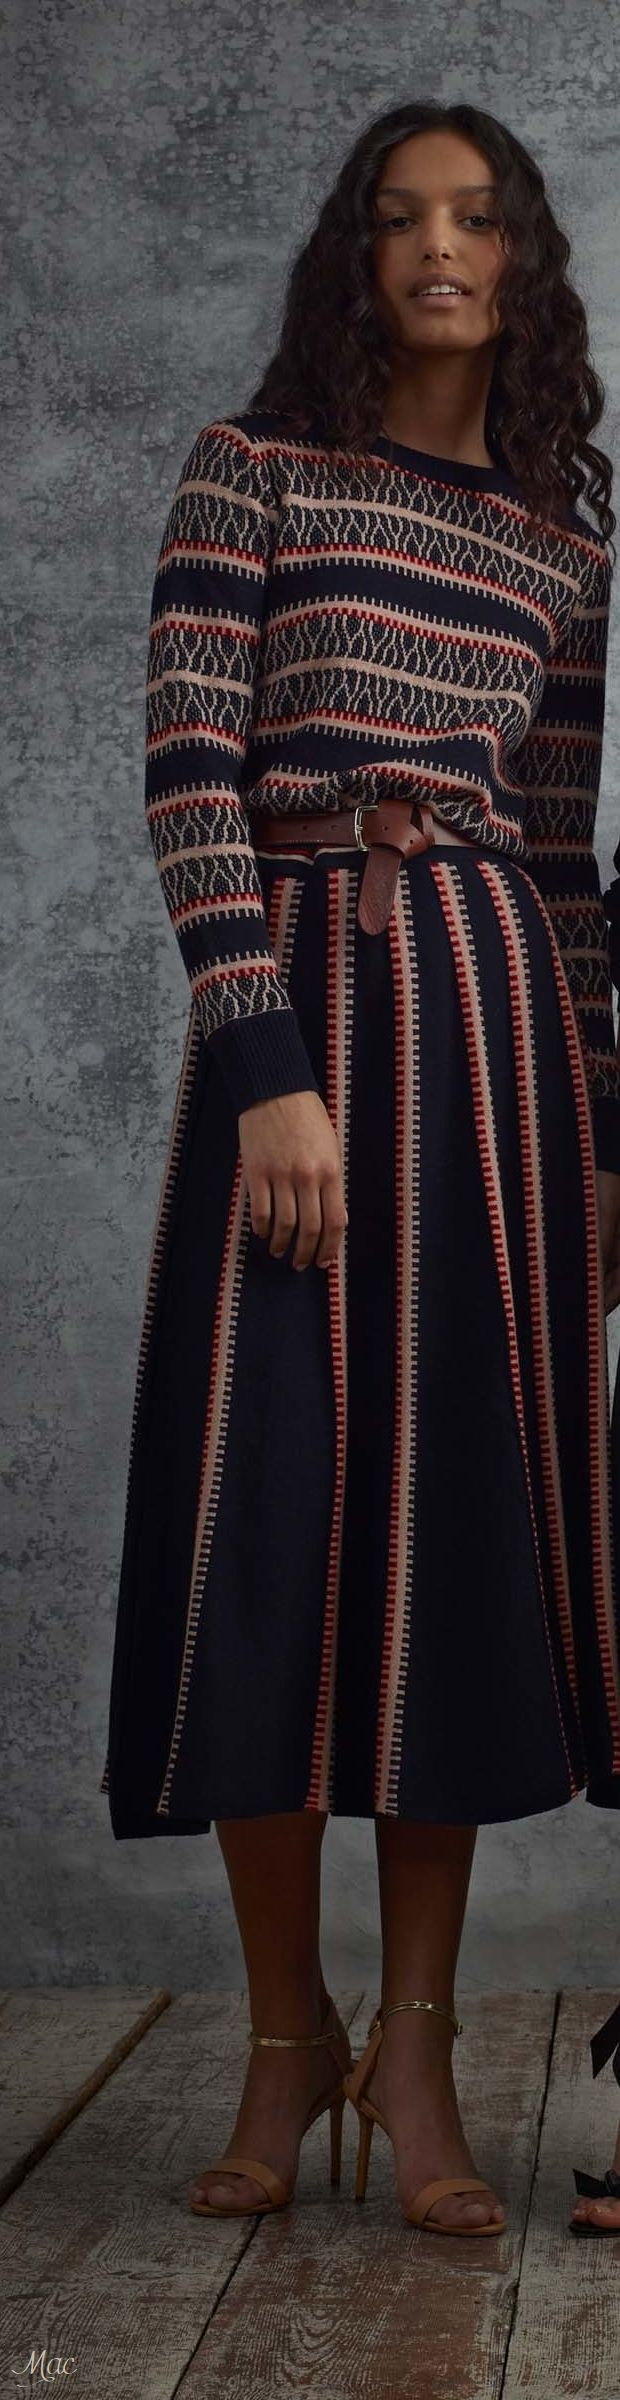 Pre-Fall 2018 Temperley London